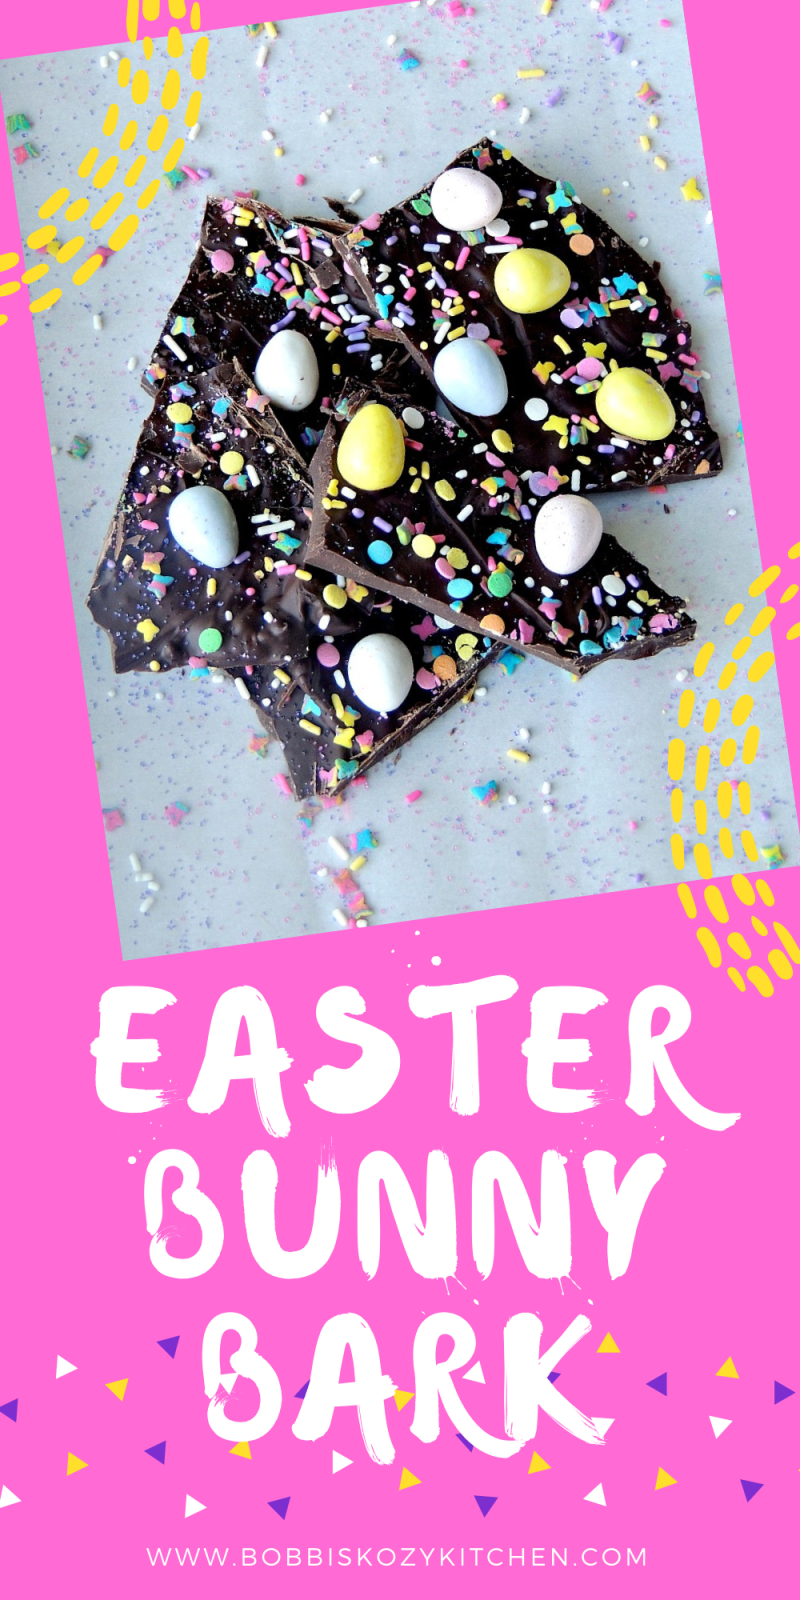 Easter Bunny Chocolate Bark - The kids will love this Easter Bunny Chocolate Bark candy recipe! How can you go wrong with chocolate and sprinkles? #chocolate #candy #easter #bunny #Bark #sweets #dessert #spring #recipe